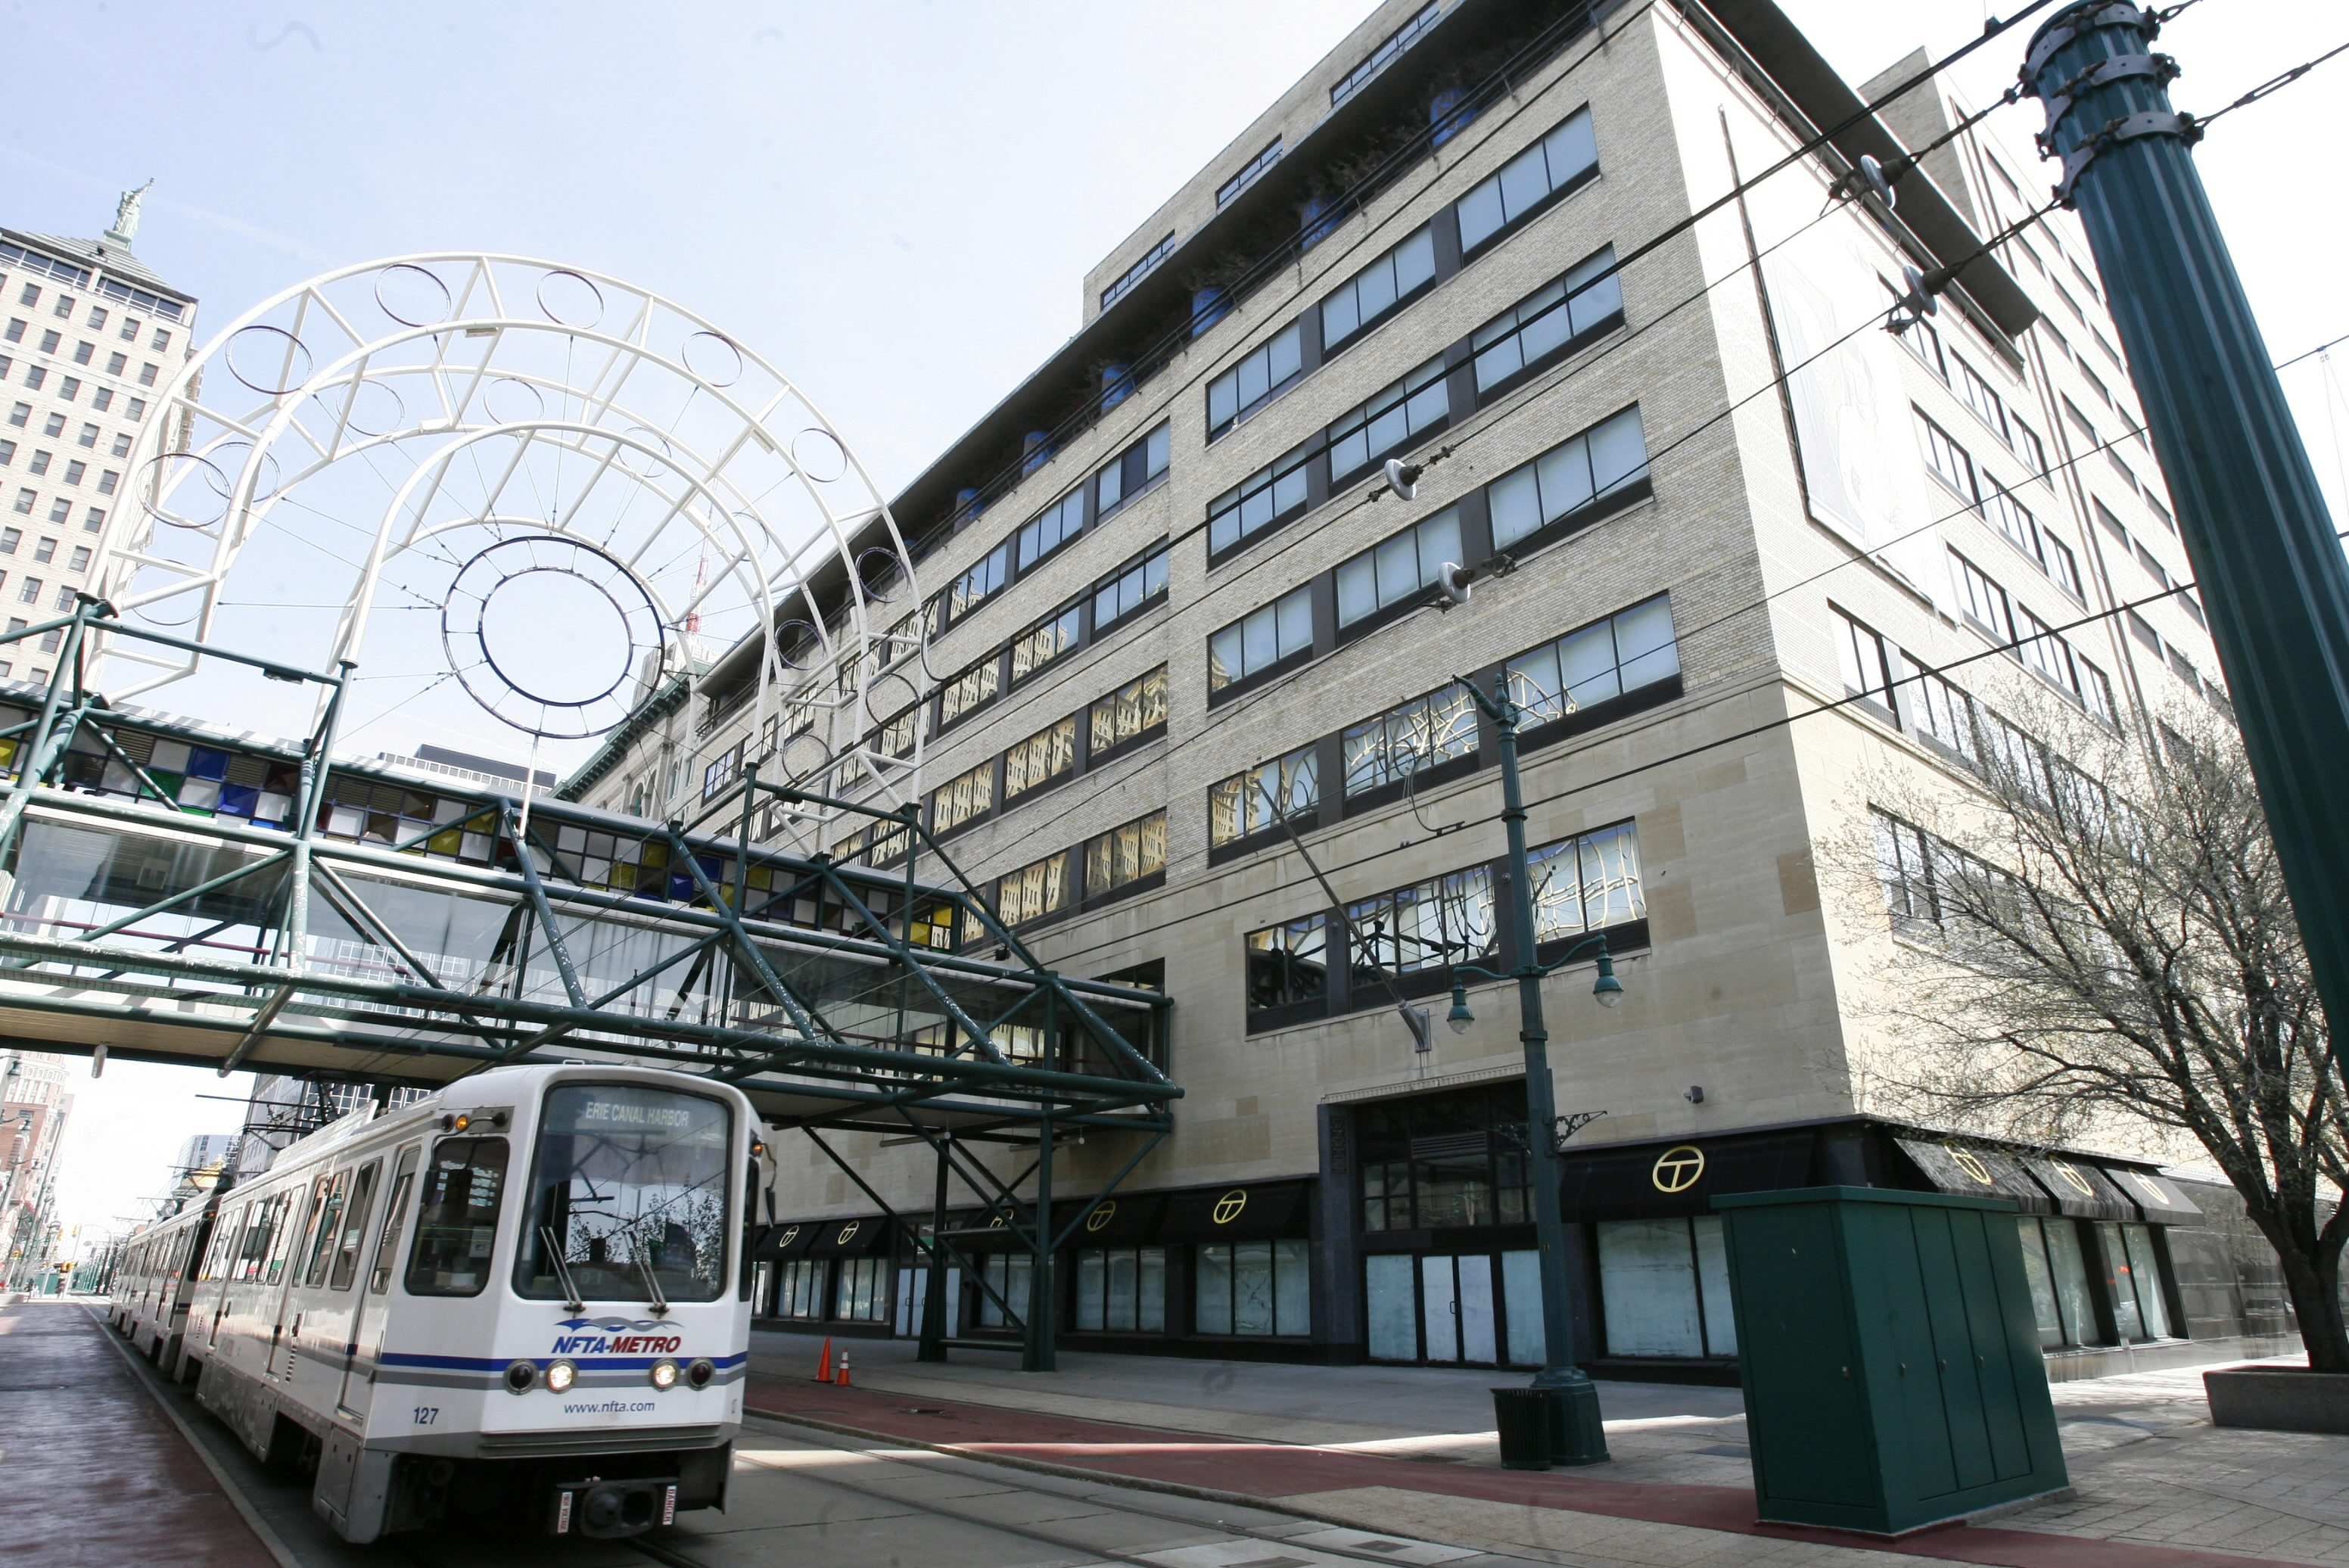 Exterrior views of the former AM&A's on Main Street in Buffalo. (News file photo)